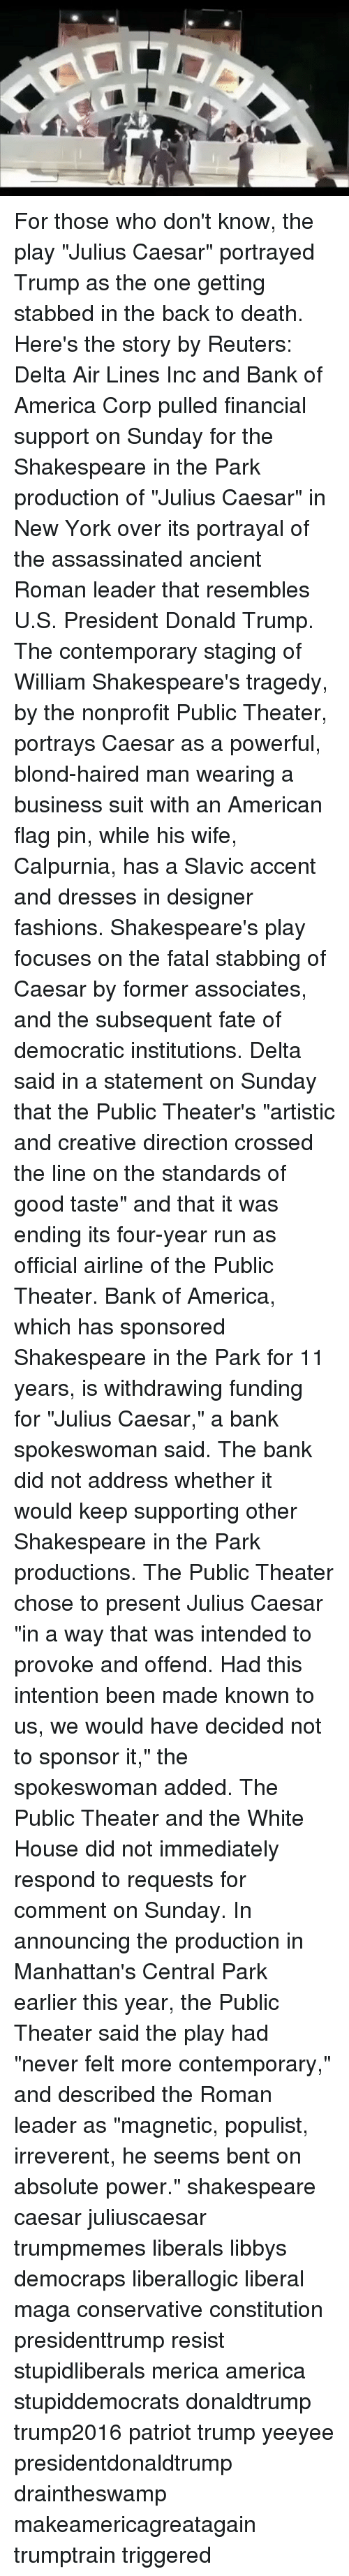 """Subsequent: For those who don't know, the play """"Julius Caesar"""" portrayed Trump as the one getting stabbed in the back to death. Here's the story by Reuters: Delta Air Lines Inc and Bank of America Corp pulled financial support on Sunday for the Shakespeare in the Park production of """"Julius Caesar"""" in New York over its portrayal of the assassinated ancient Roman leader that resembles U.S. President Donald Trump. The contemporary staging of William Shakespeare's tragedy, by the nonprofit Public Theater, portrays Caesar as a powerful, blond-haired man wearing a business suit with an American flag pin, while his wife, Calpurnia, has a Slavic accent and dresses in designer fashions. Shakespeare's play focuses on the fatal stabbing of Caesar by former associates, and the subsequent fate of democratic institutions. Delta said in a statement on Sunday that the Public Theater's """"artistic and creative direction crossed the line on the standards of good taste"""" and that it was ending its four-year run as official airline of the Public Theater. Bank of America, which has sponsored Shakespeare in the Park for 11 years, is withdrawing funding for """"Julius Caesar,"""" a bank spokeswoman said. The bank did not address whether it would keep supporting other Shakespeare in the Park productions. The Public Theater chose to present Julius Caesar """"in a way that was intended to provoke and offend. Had this intention been made known to us, we would have decided not to sponsor it,"""" the spokeswoman added. The Public Theater and the White House did not immediately respond to requests for comment on Sunday. In announcing the production in Manhattan's Central Park earlier this year, the Public Theater said the play had """"never felt more contemporary,"""" and described the Roman leader as """"magnetic, populist, irreverent, he seems bent on absolute power."""" shakespeare caesar juliuscaesar trumpmemes liberals libbys democraps liberallogic liberal maga conservative constitution presidenttrump resist stupidli"""